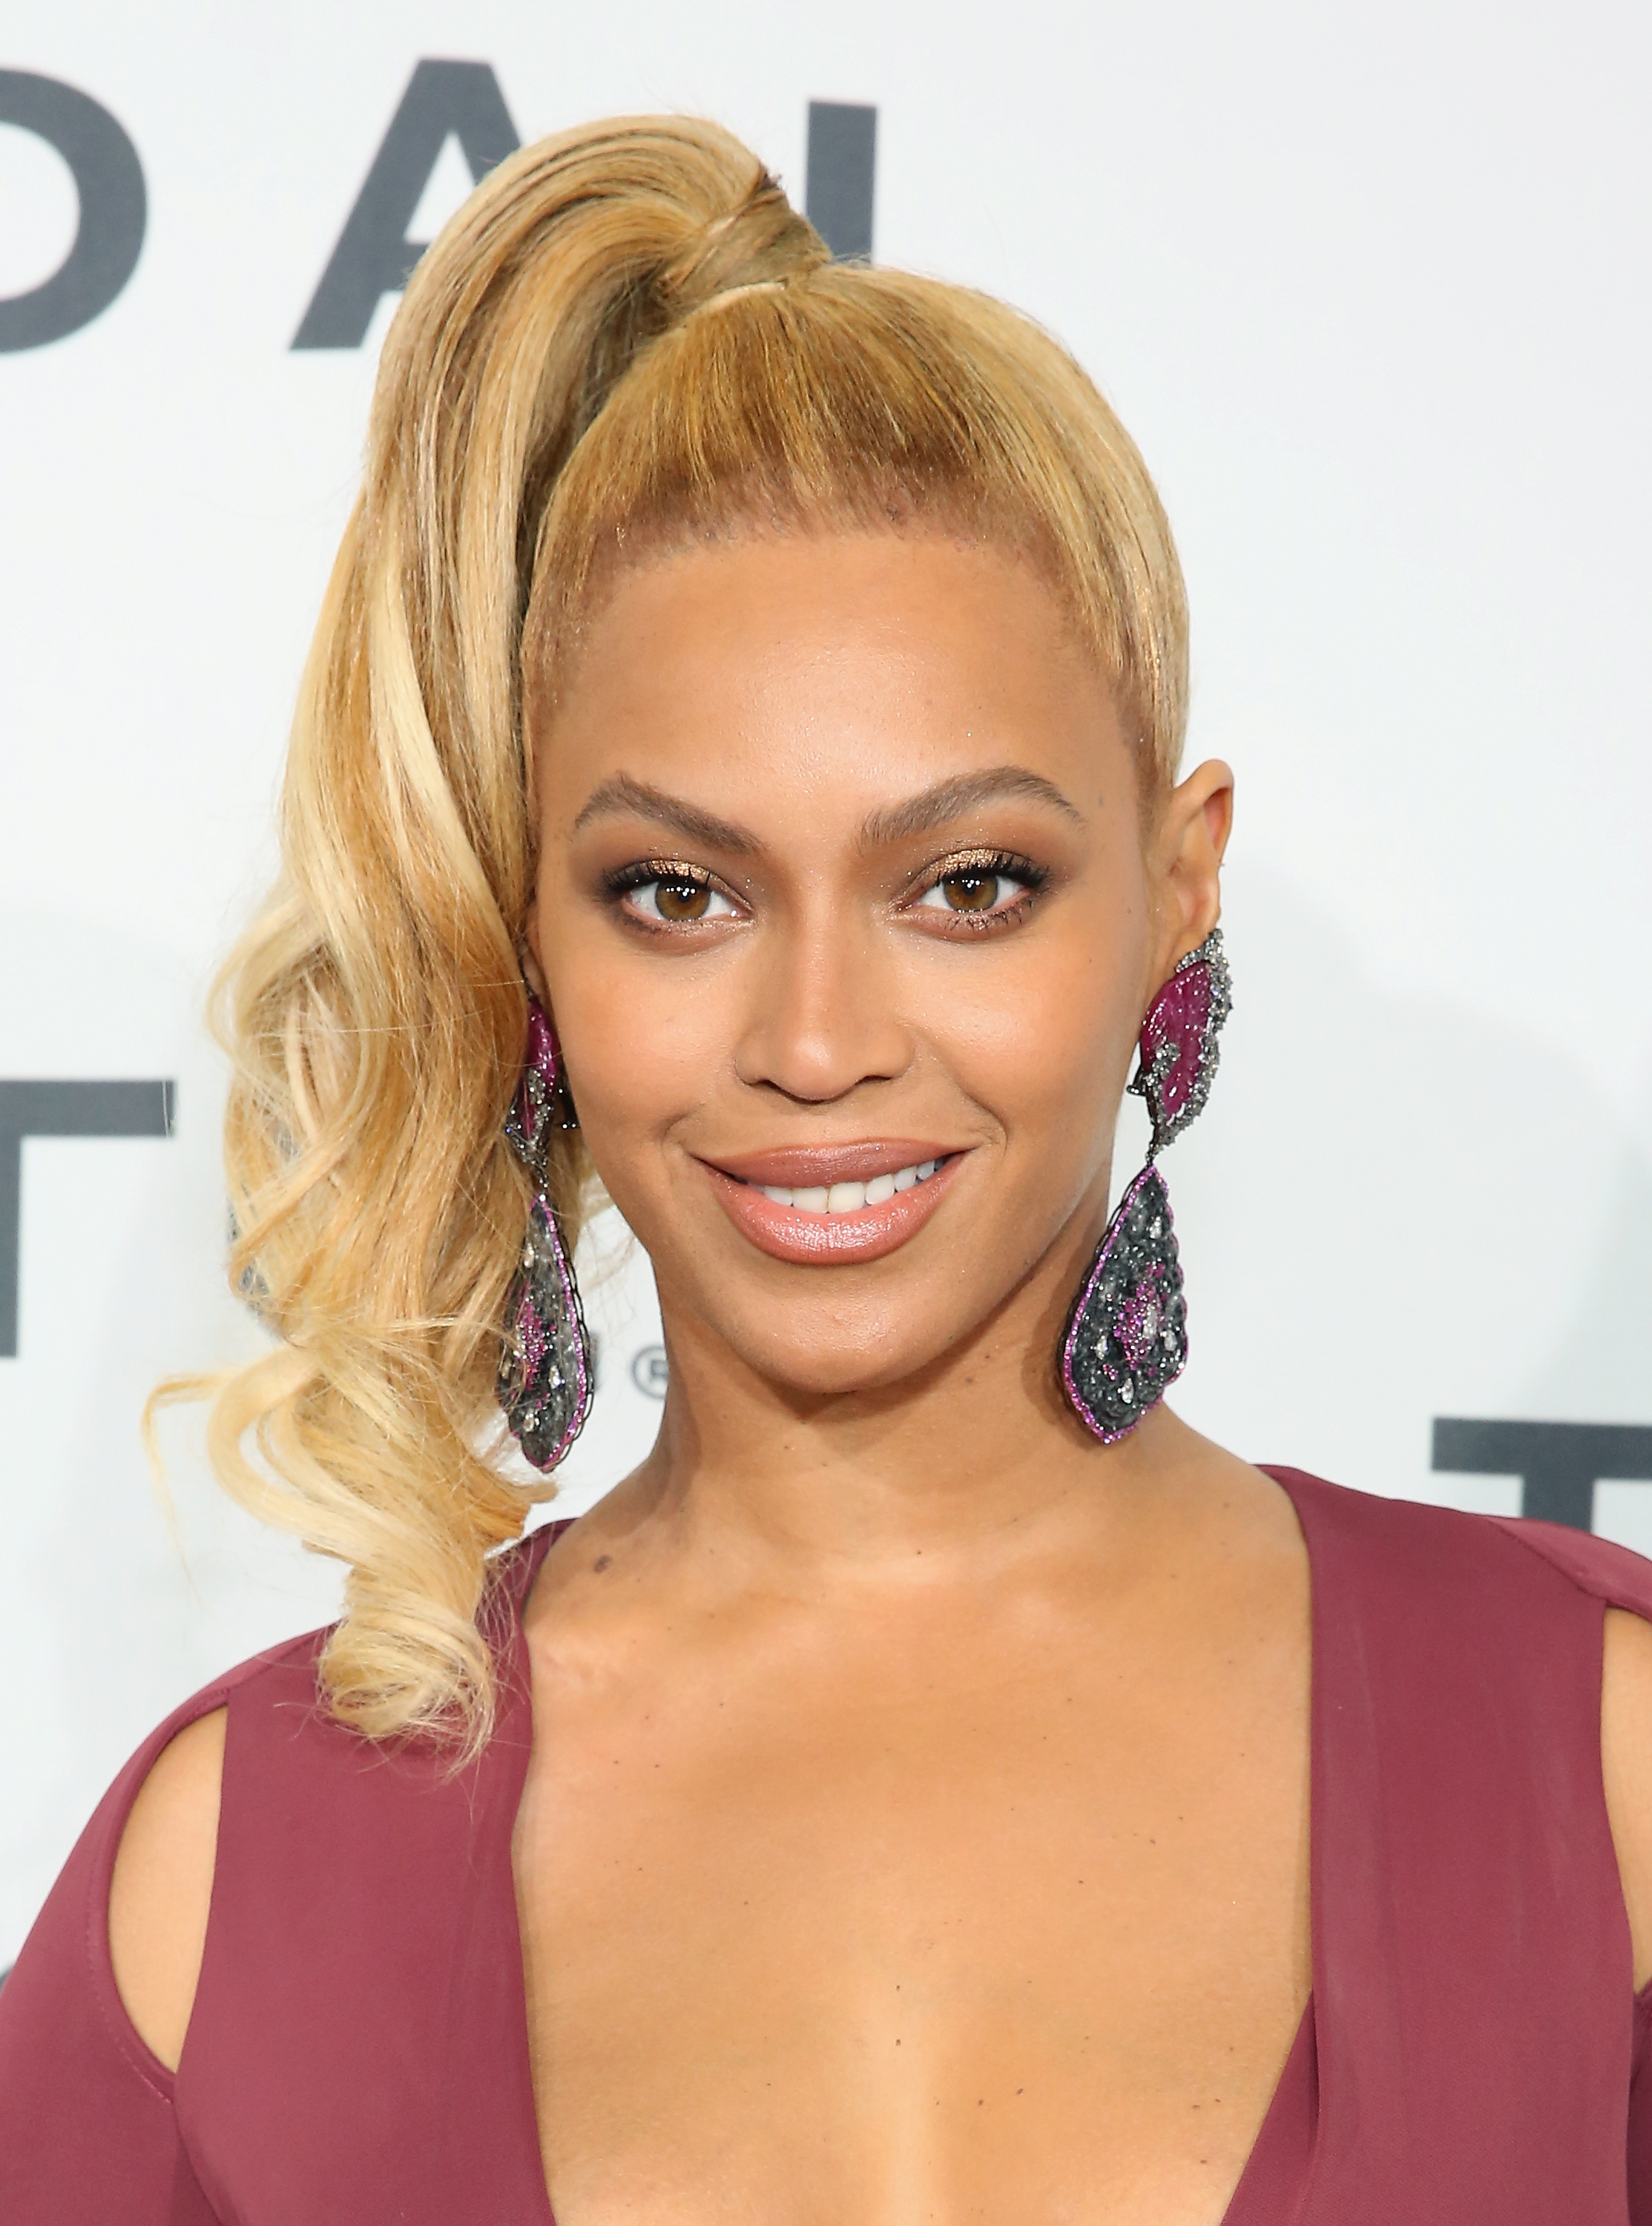 Beyoncé attends TIDAL X: 1020 in the Brooklyn borough of New York City on Oct. 20, 2015.